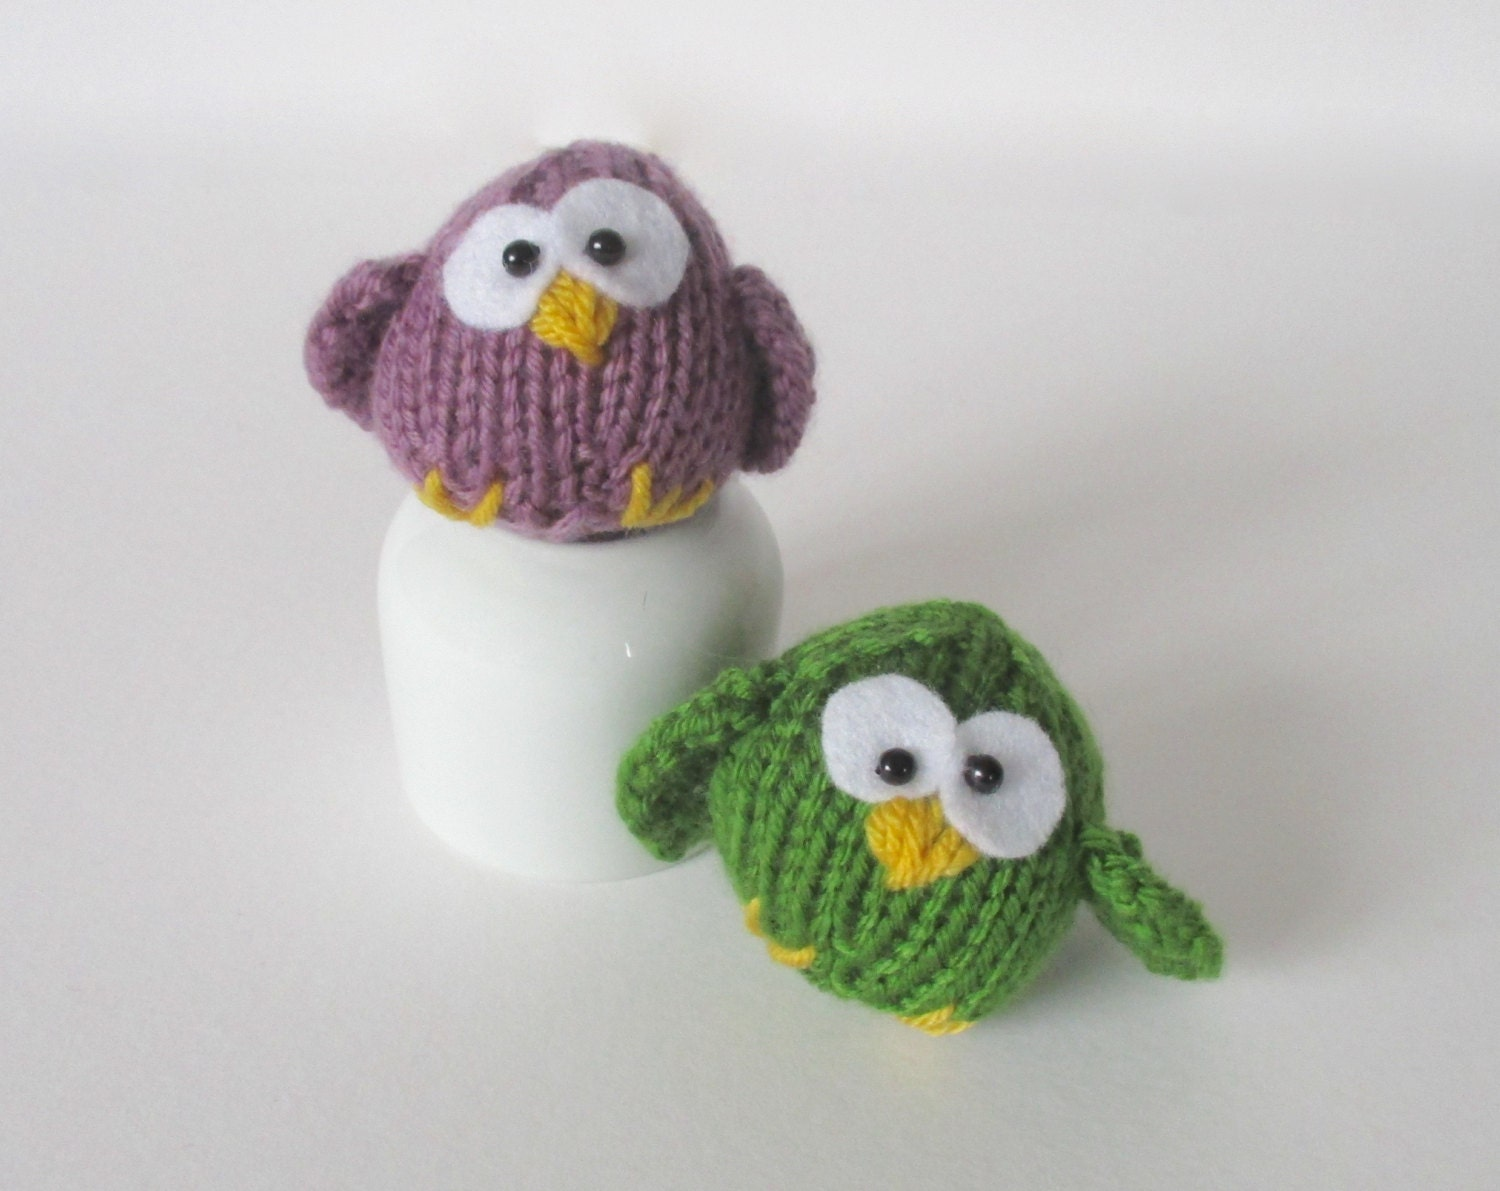 Little Owl toy knitting pattern